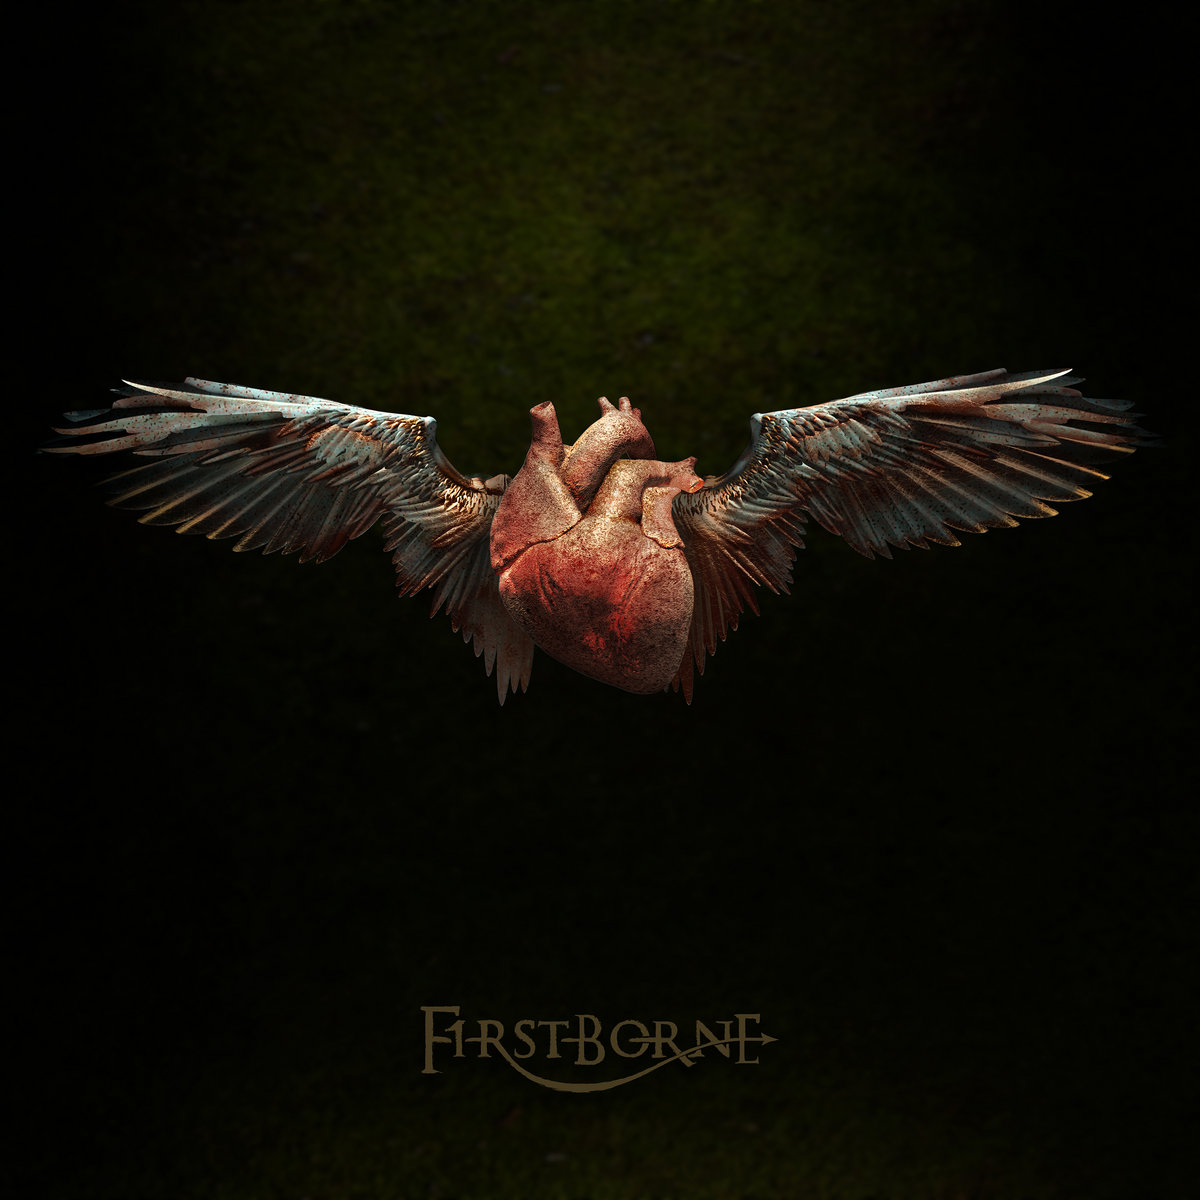 Firstborne EP chris adler myrone james lomenzo girish pradhan - mega-depth